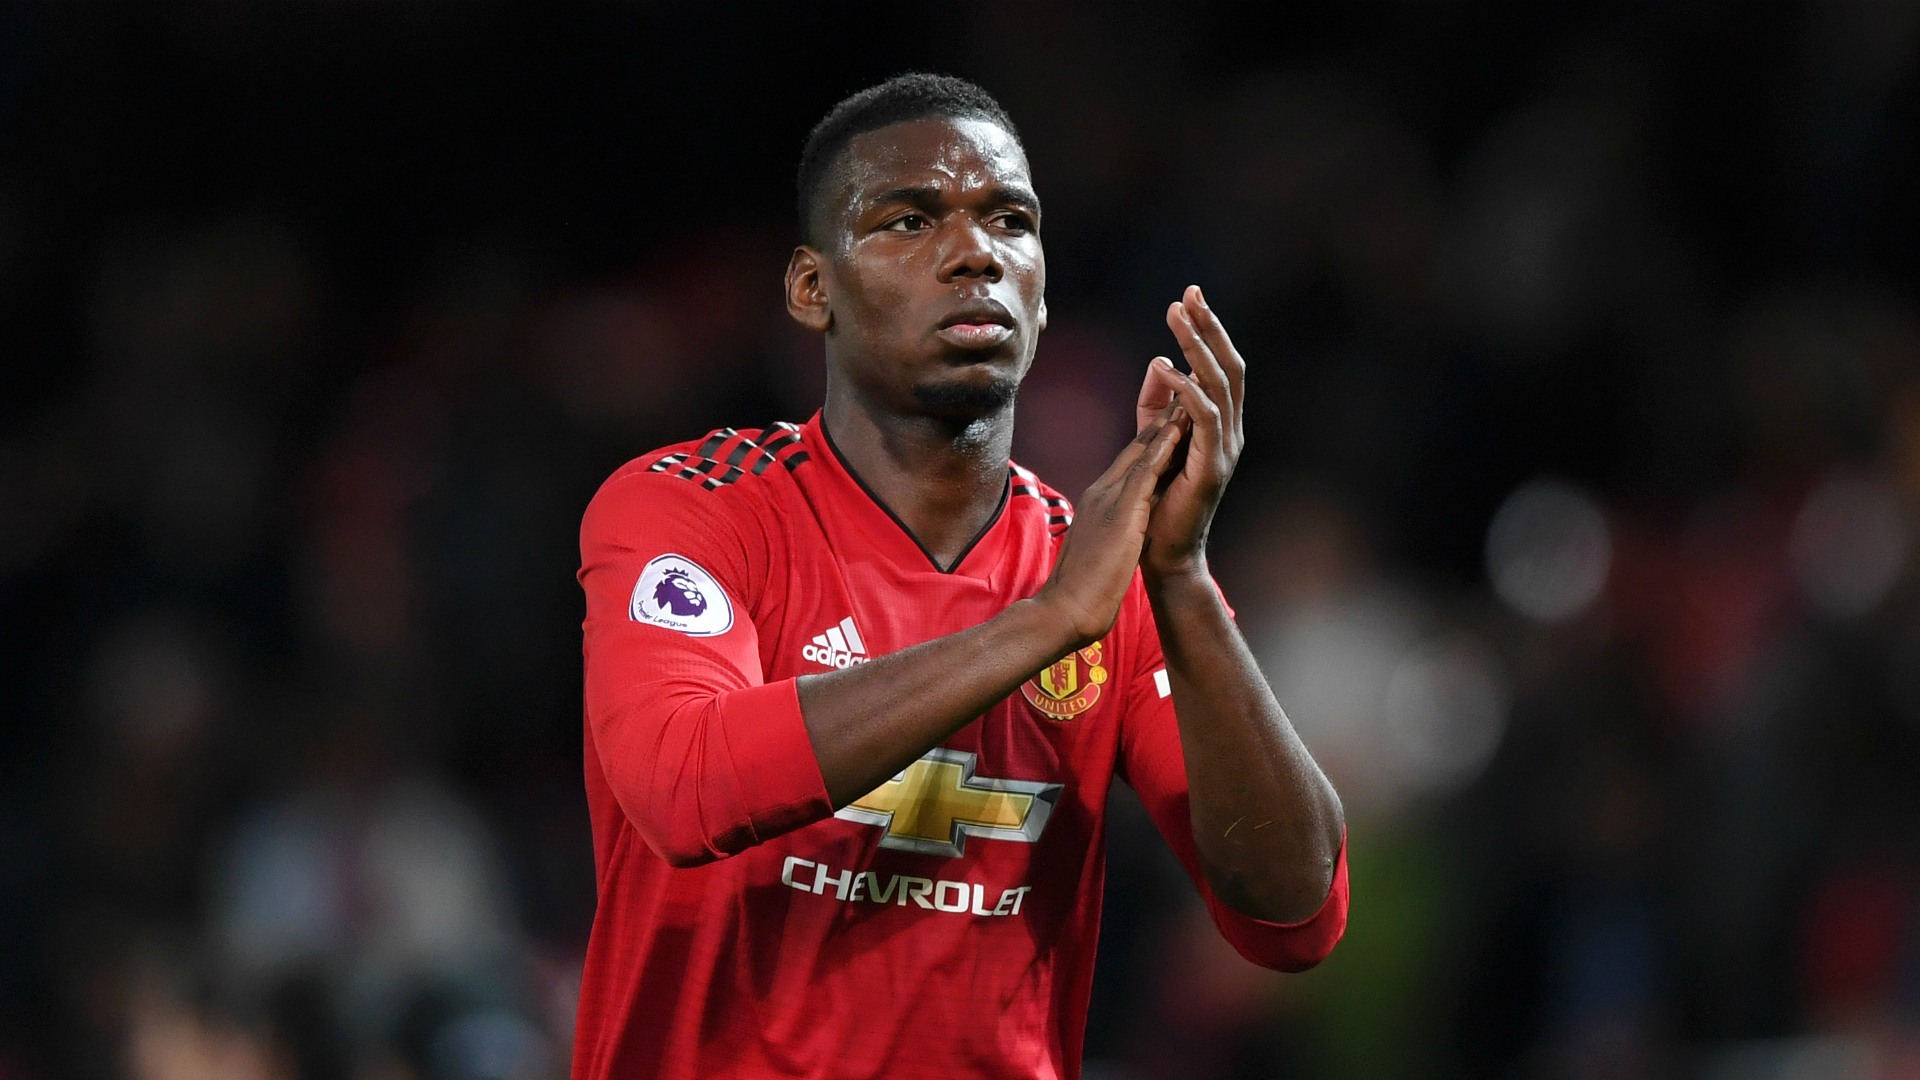 Rumour Has It: Solskjaer wants to sell Pogba to raise funds